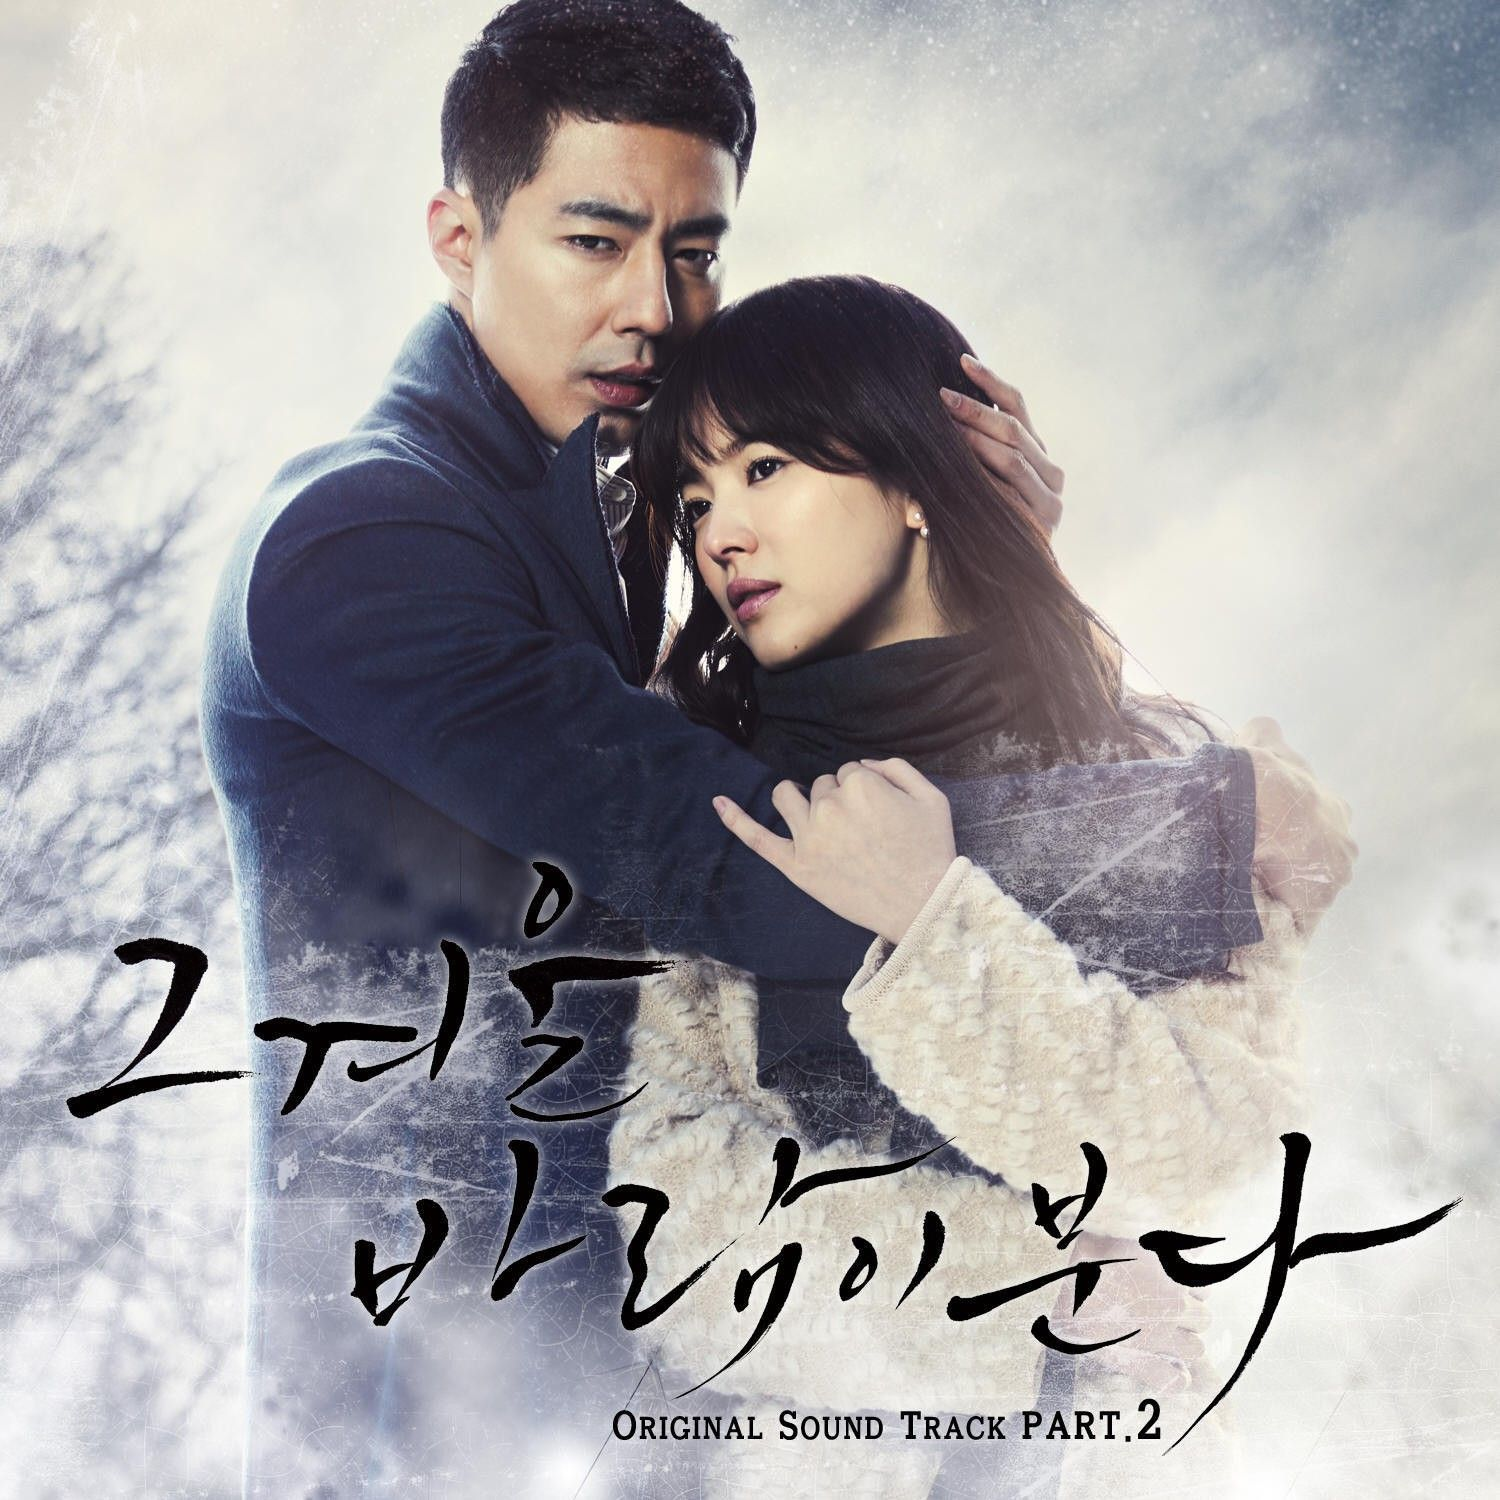 [Single] The One   That Wind, The Winter Blows OST Part.2